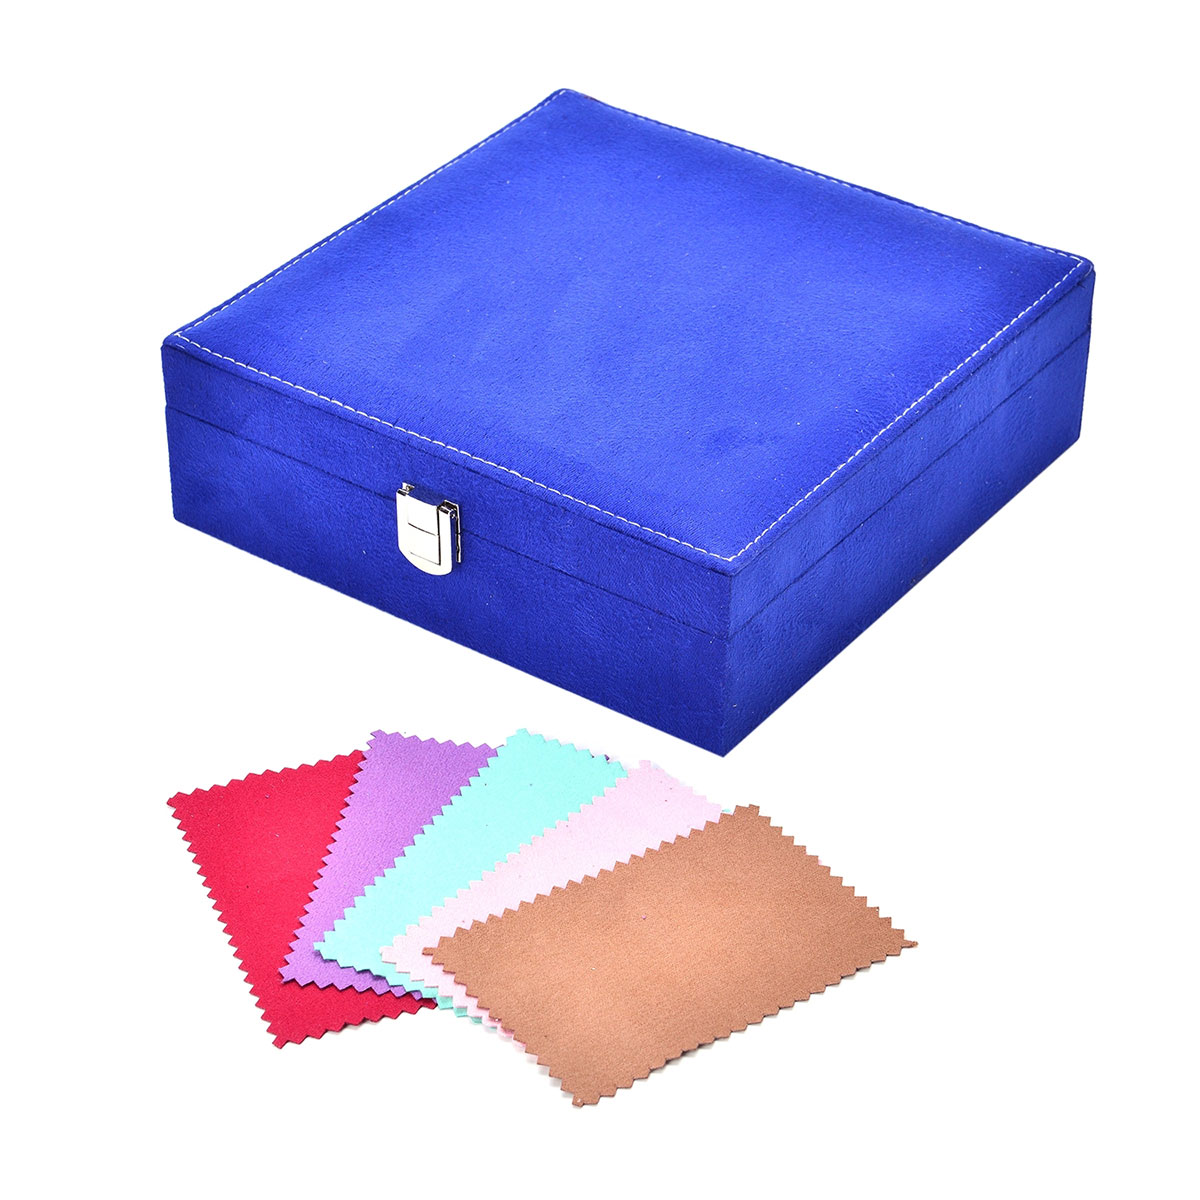 one time only blue velvet jewelry box in and multi color set of 5 silver polishing. Black Bedroom Furniture Sets. Home Design Ideas